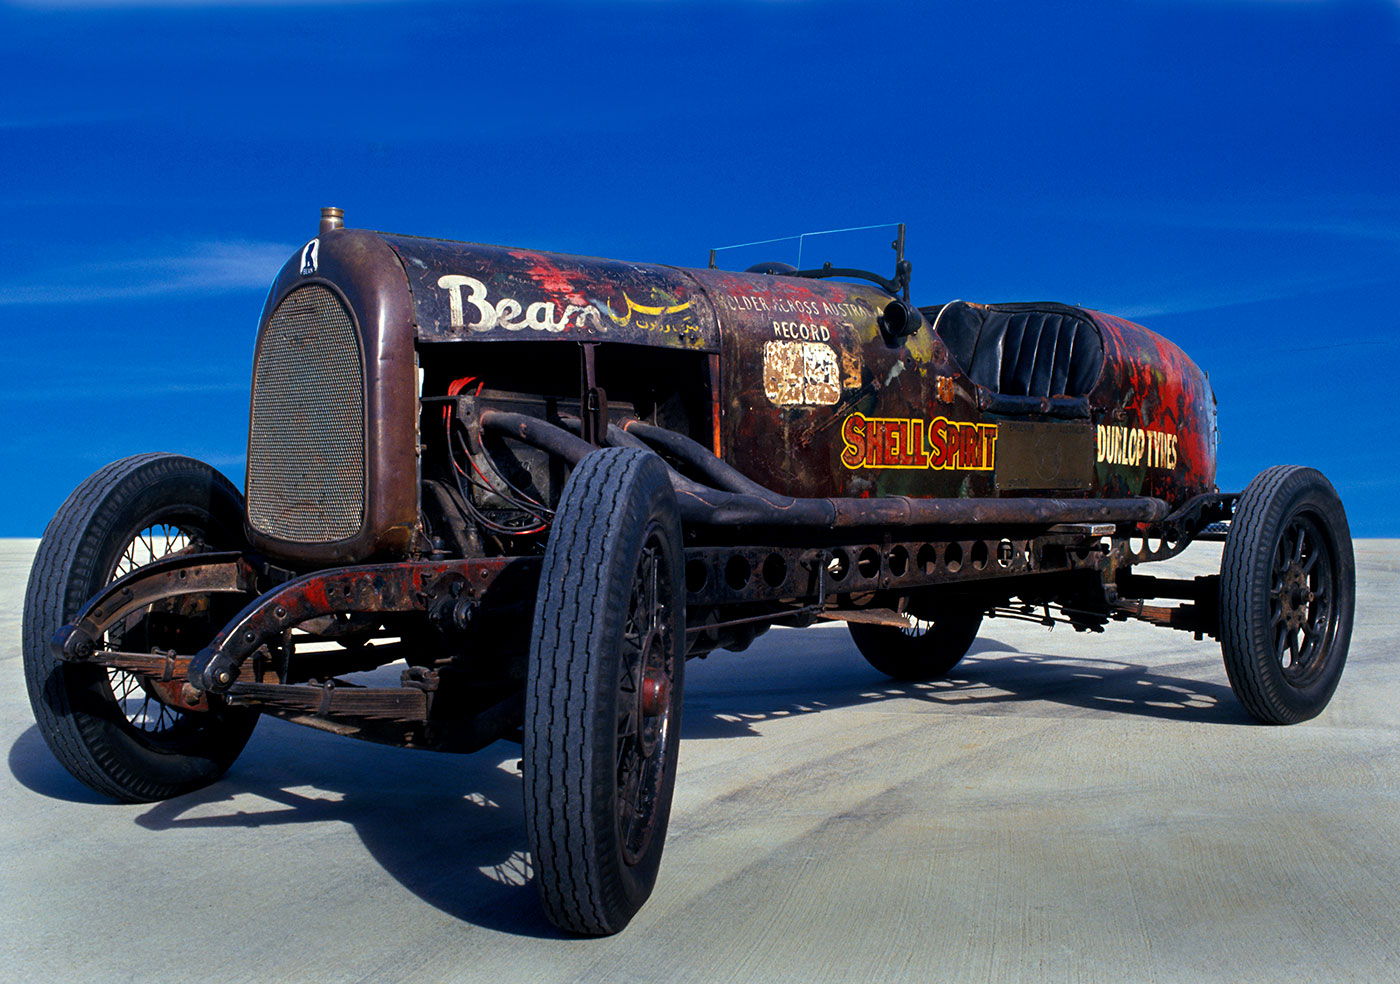 Francis Birtles' Bean 14 car, which he named 'The Sundowner'. - click to view larger image